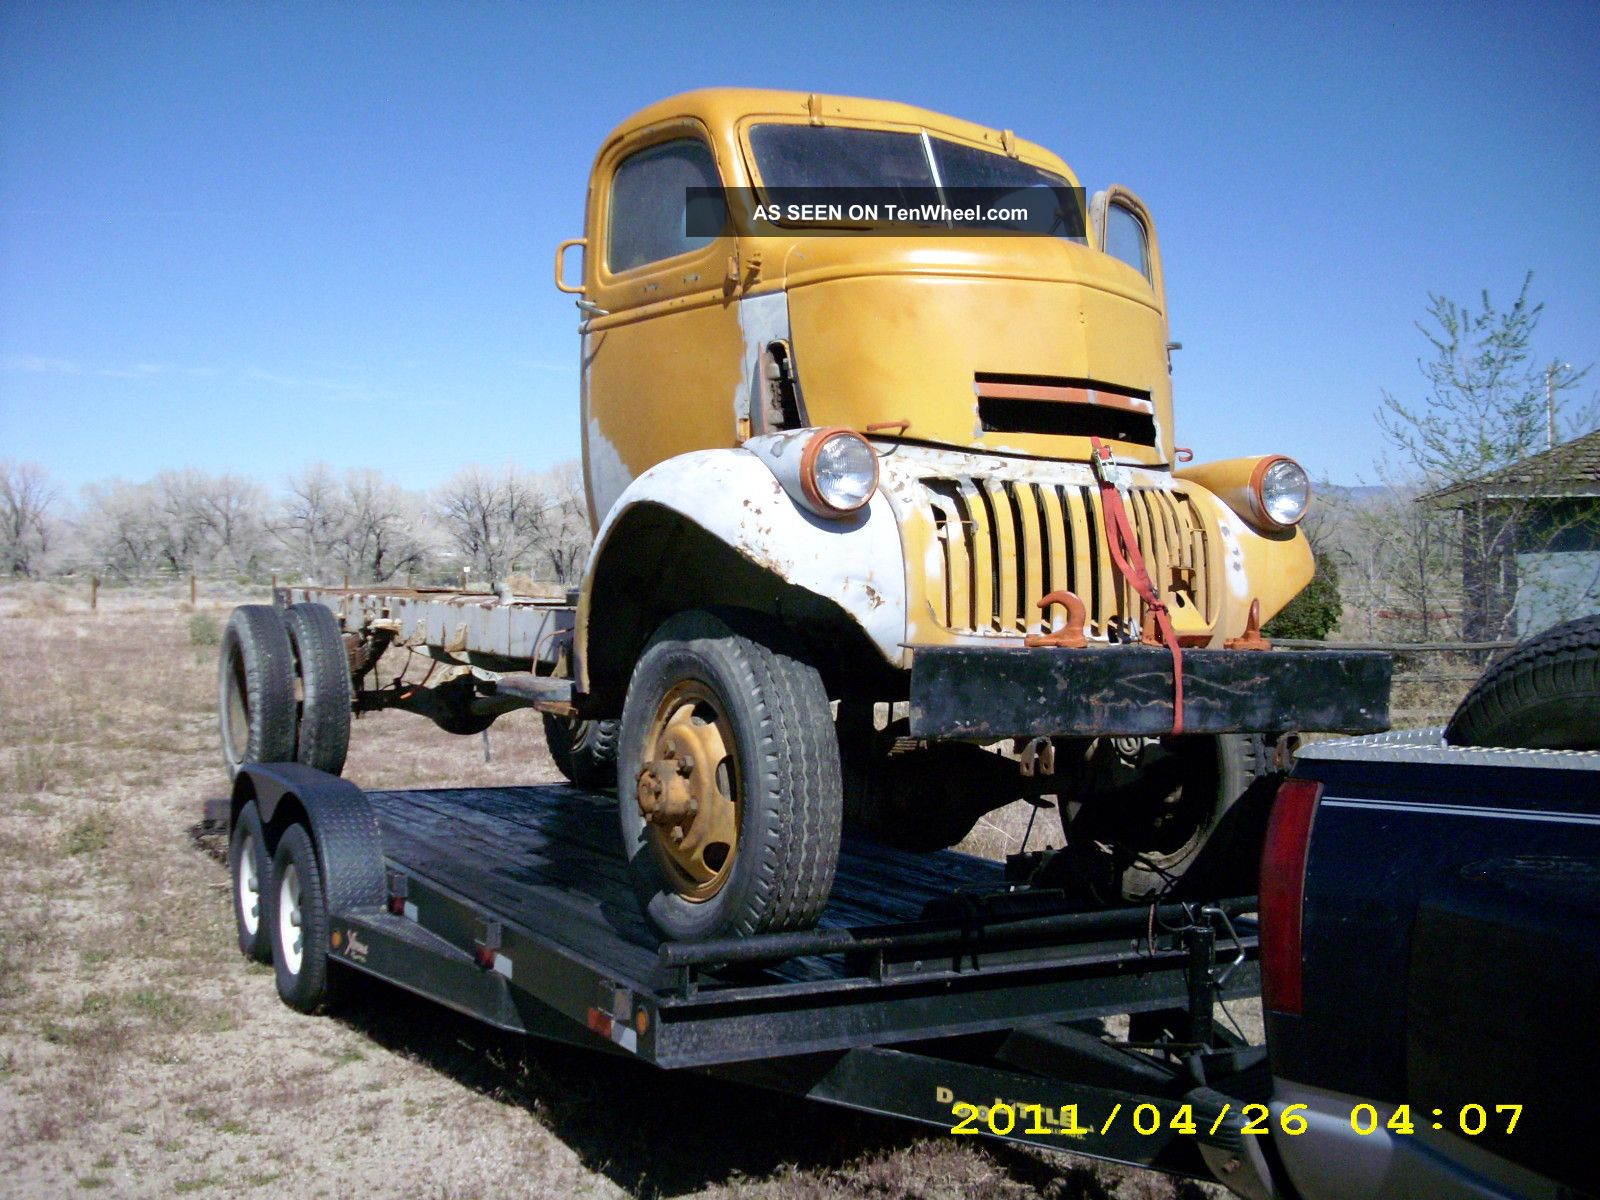 1943 Chevy K - 33 Military 11 / 2 Ton 4x4 Coe Truck Wwii